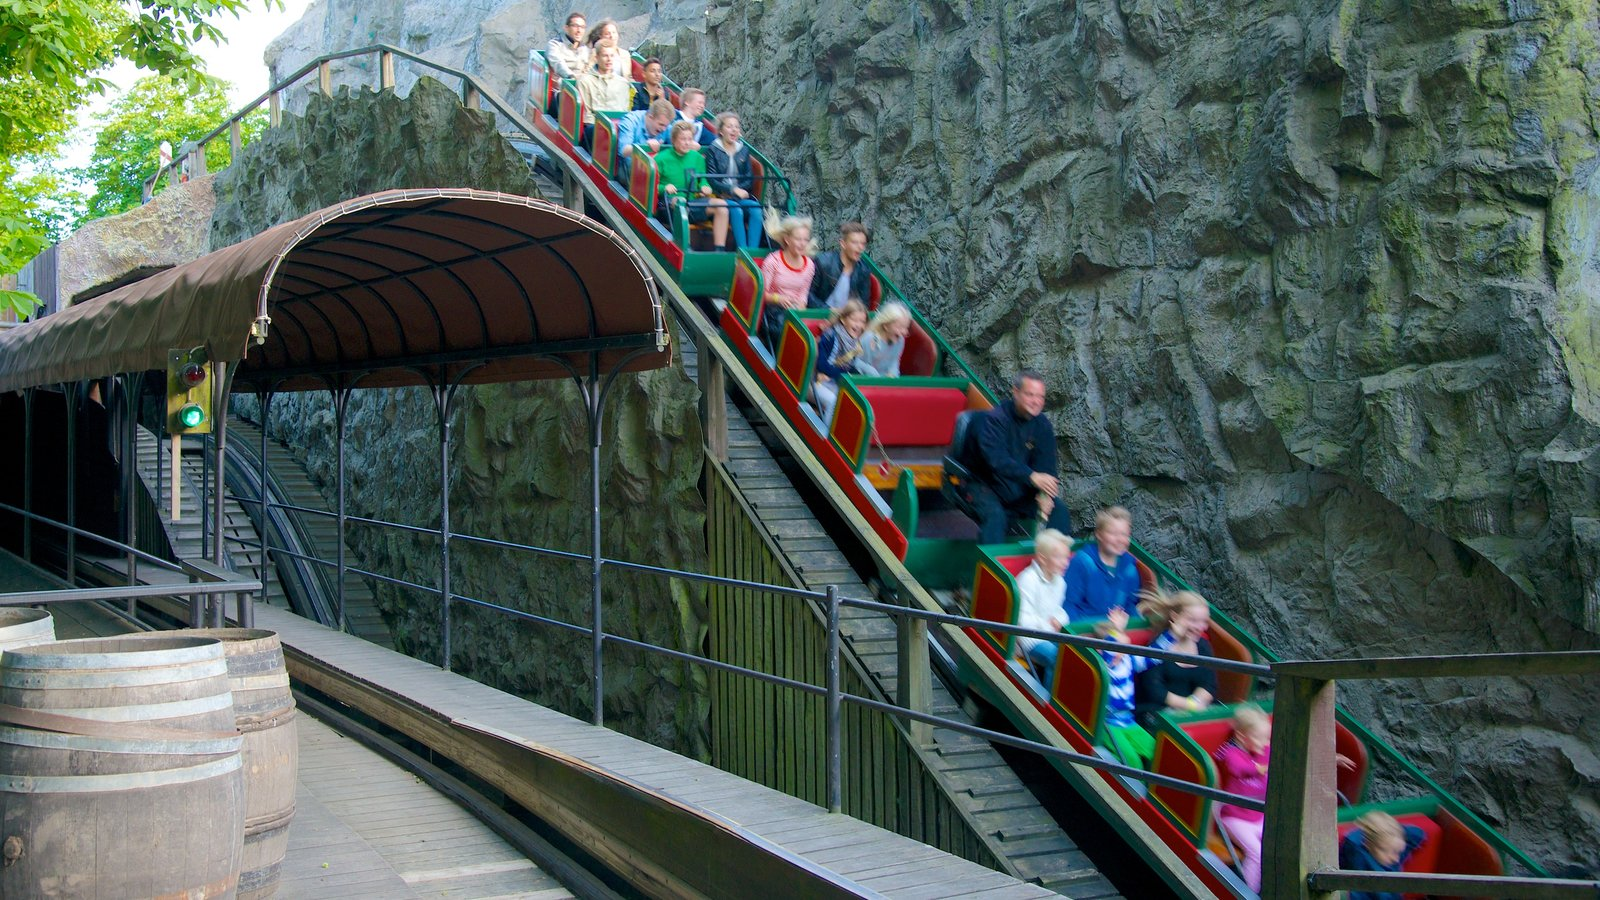 Tivoli Amusement Park Aarhus Tivoli Gardens Pictures View Photos And Images Of Tivoli